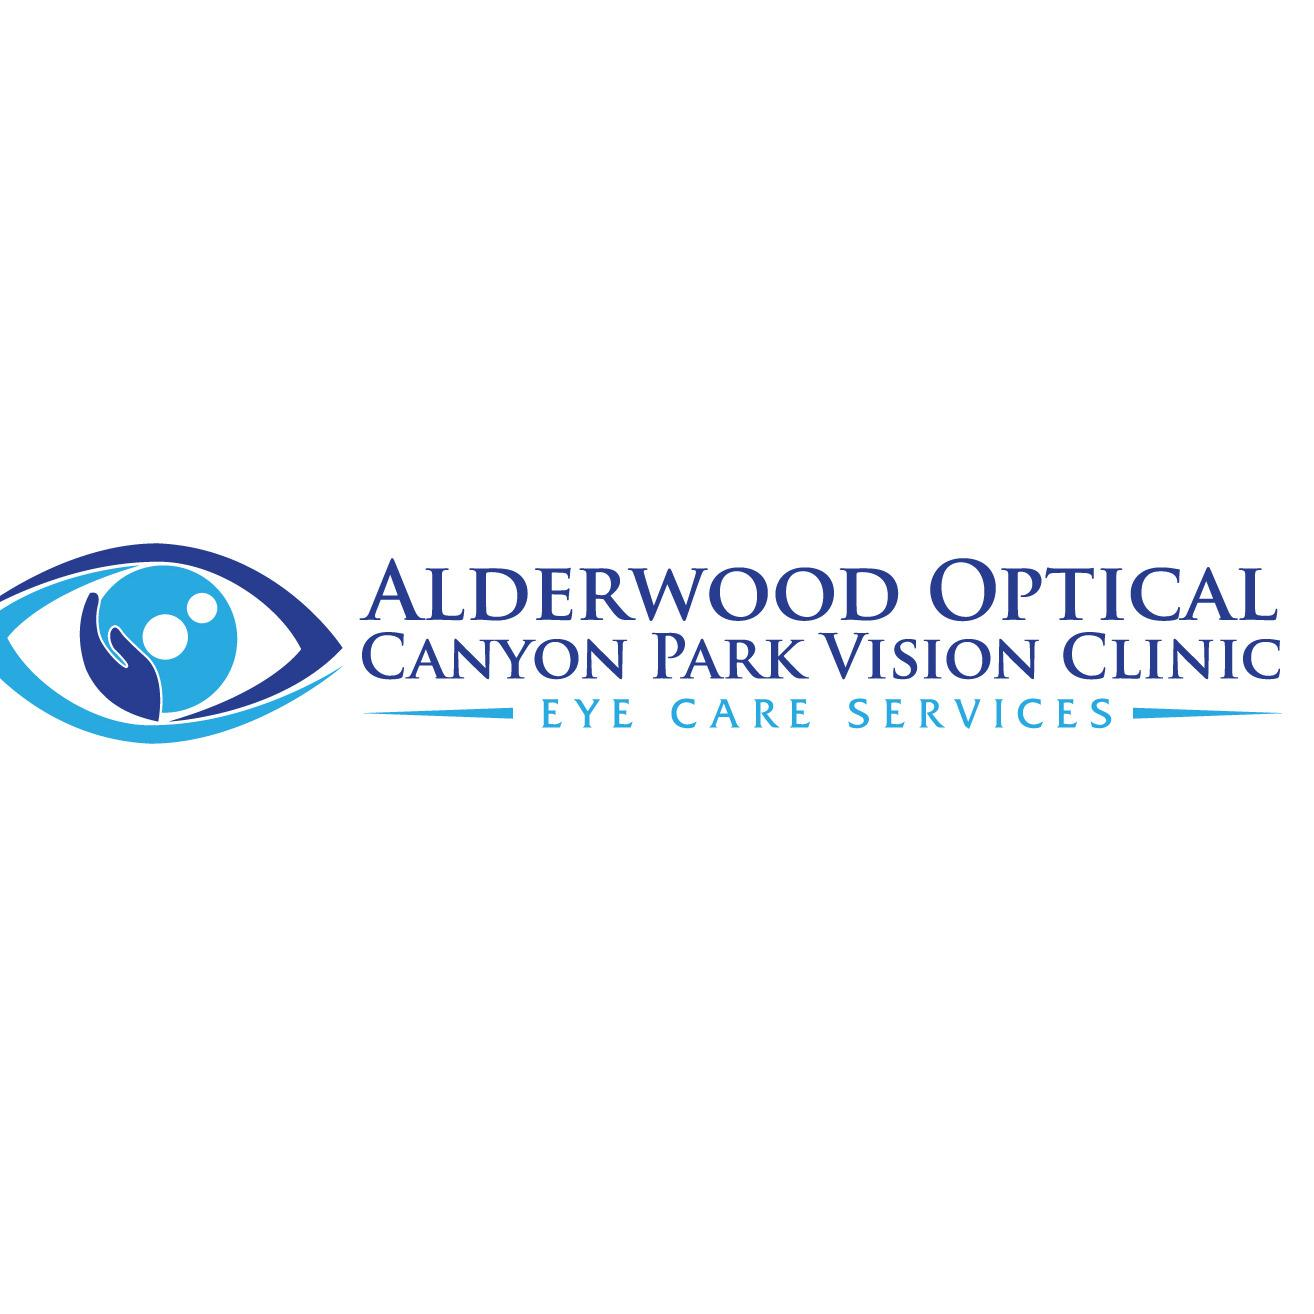 Canyon Park Vision Clinic